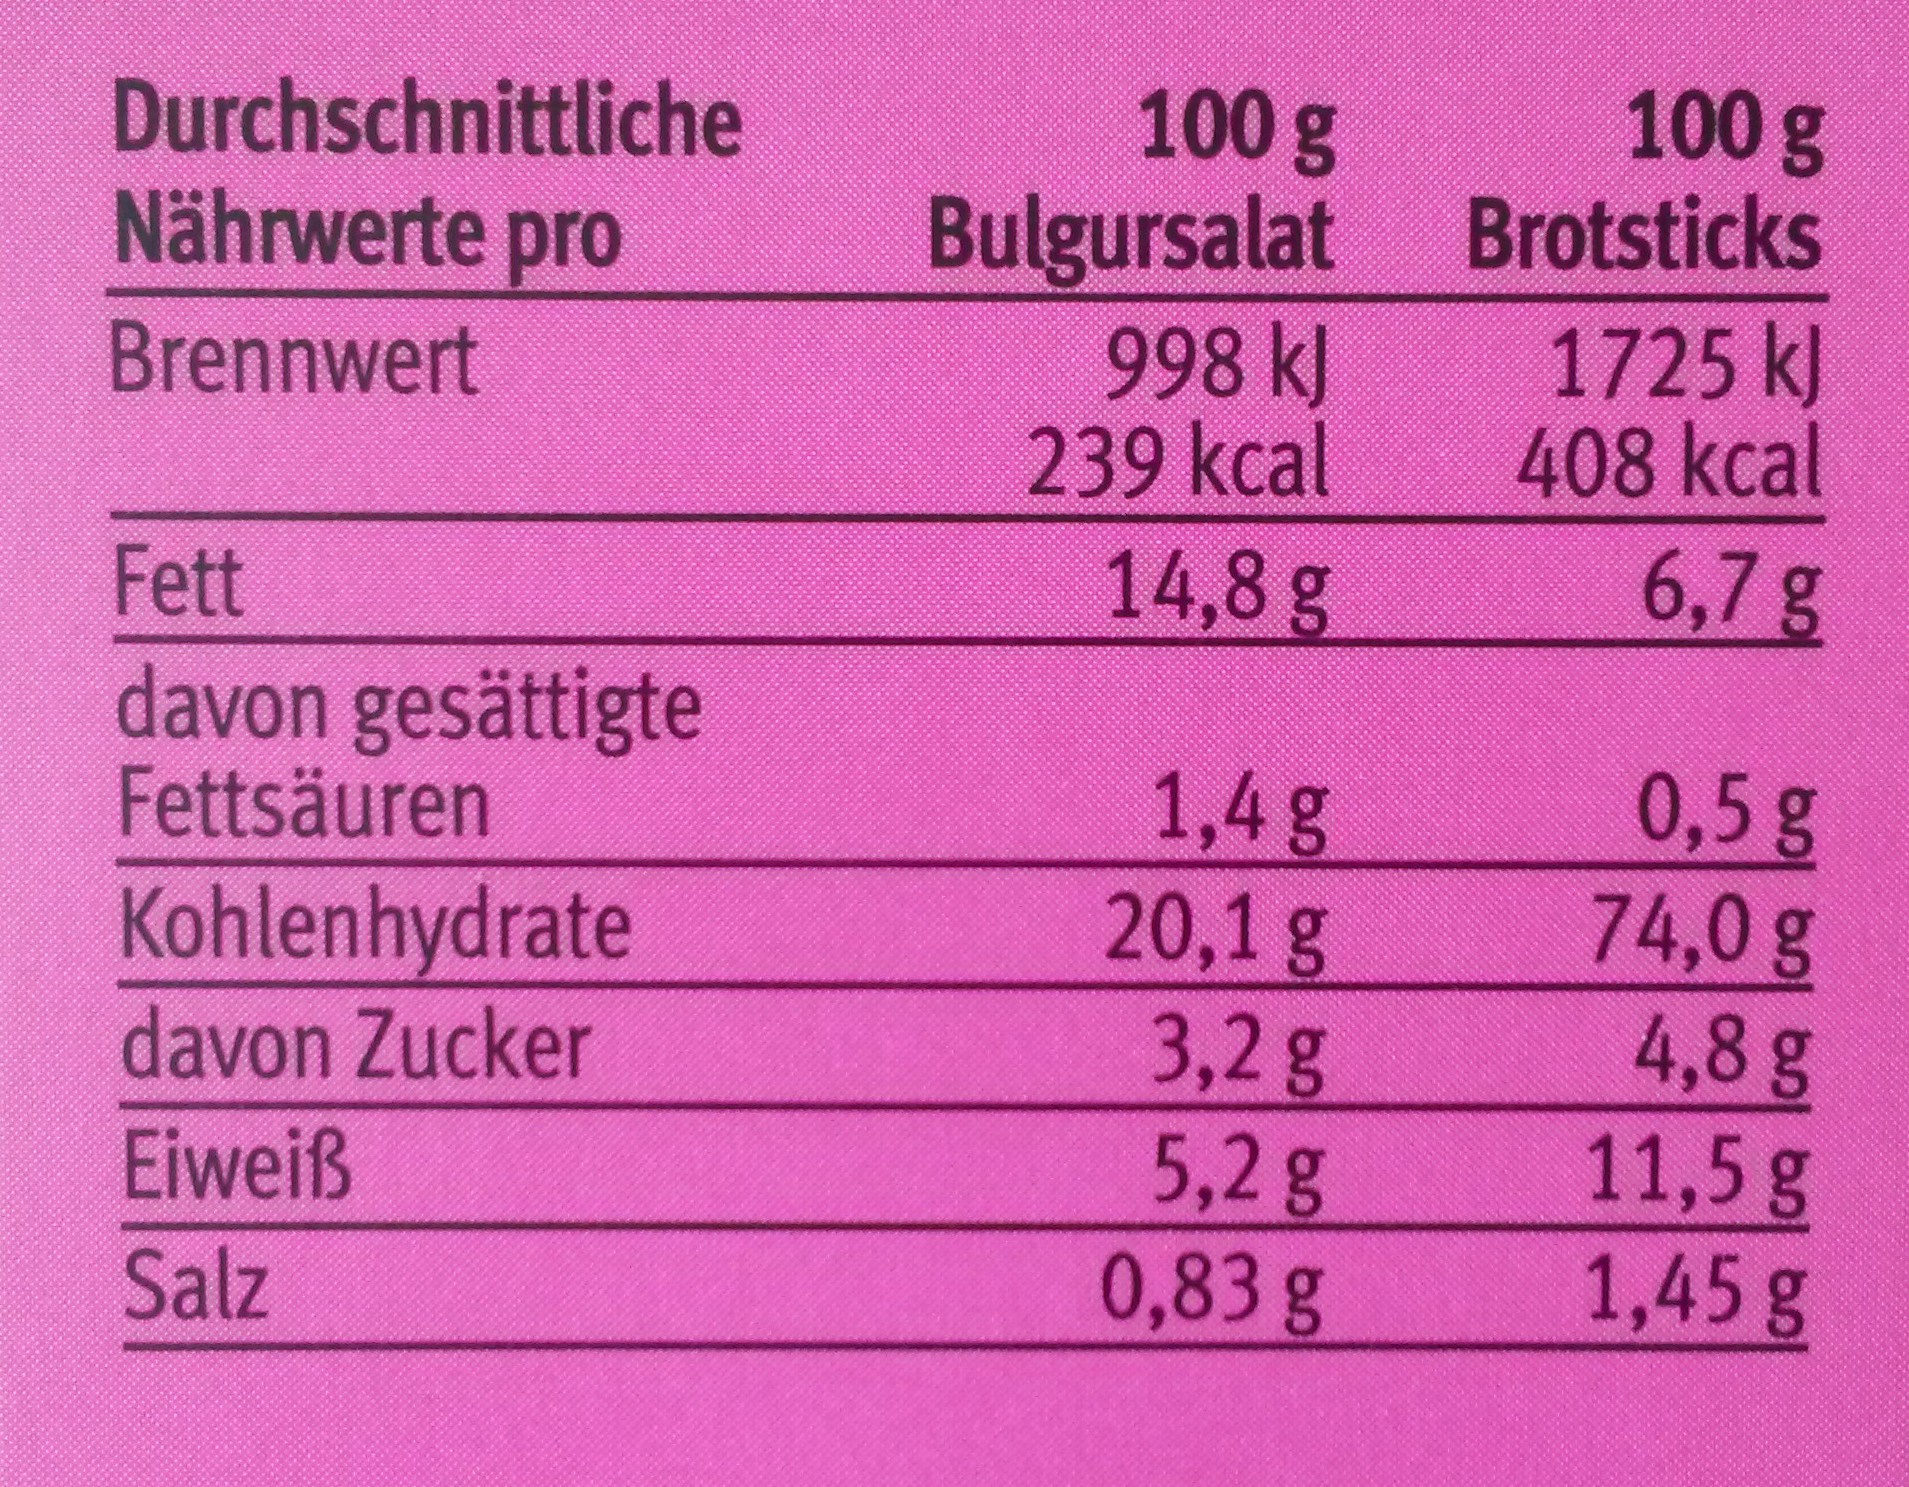 Bulgursalat - Nutrition facts - de